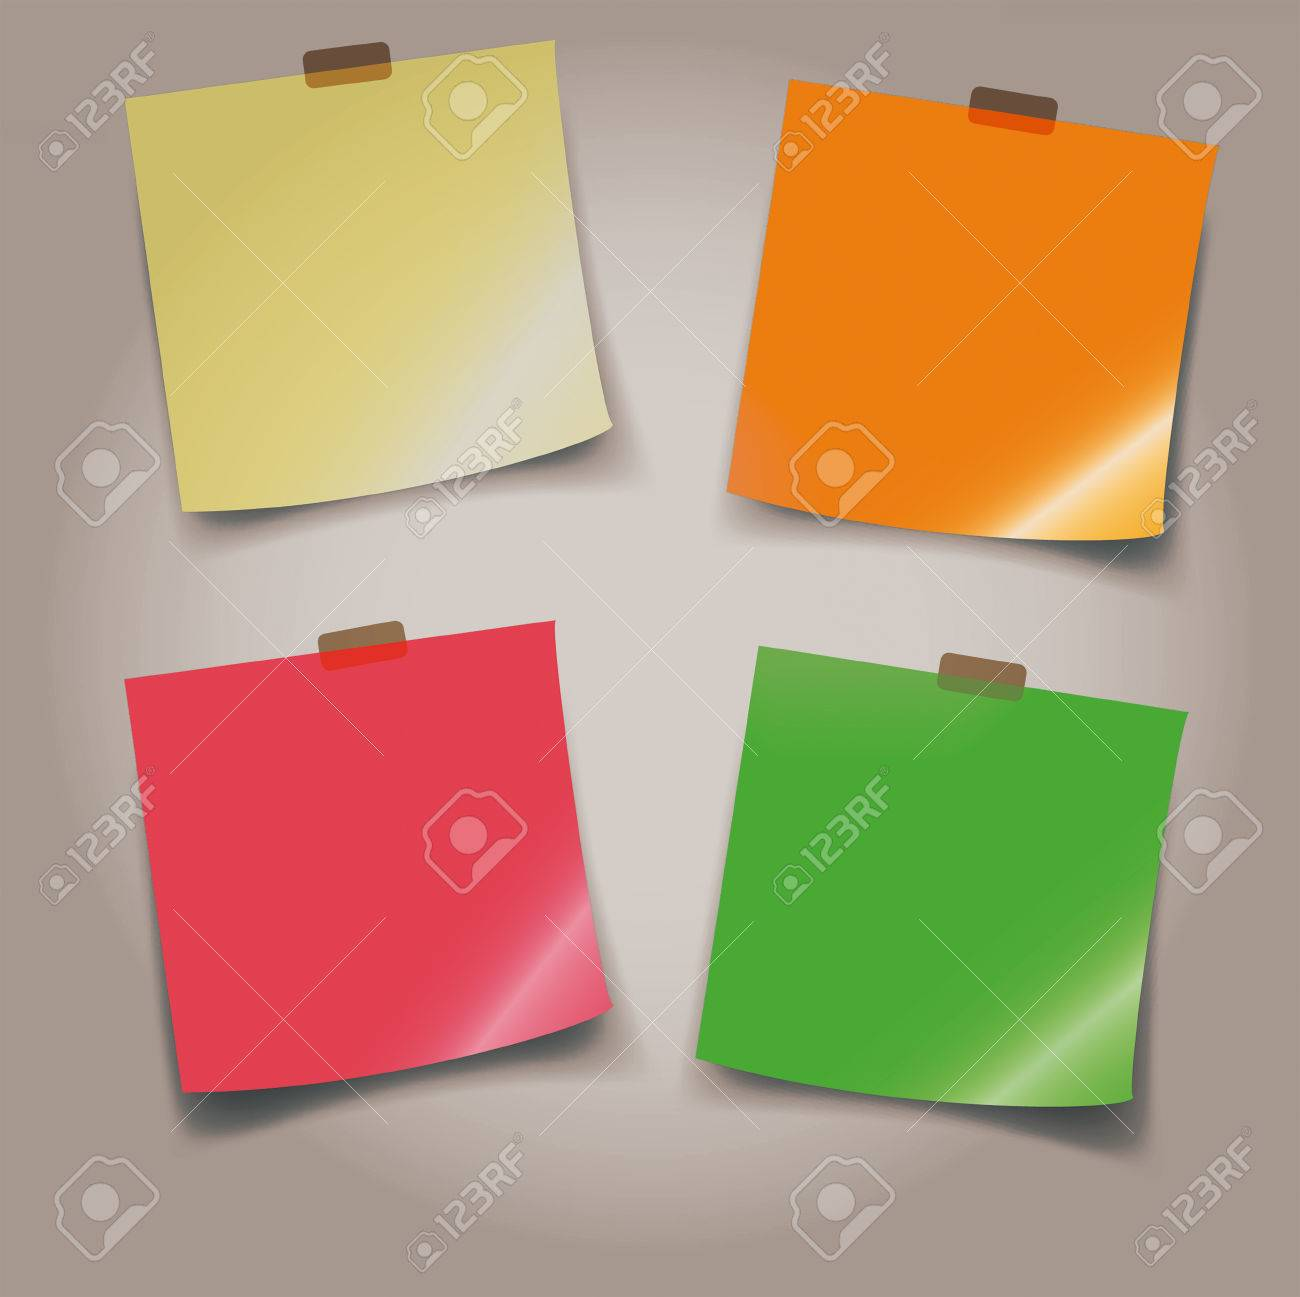 adhesive note paper with transparent sticker fancy colored